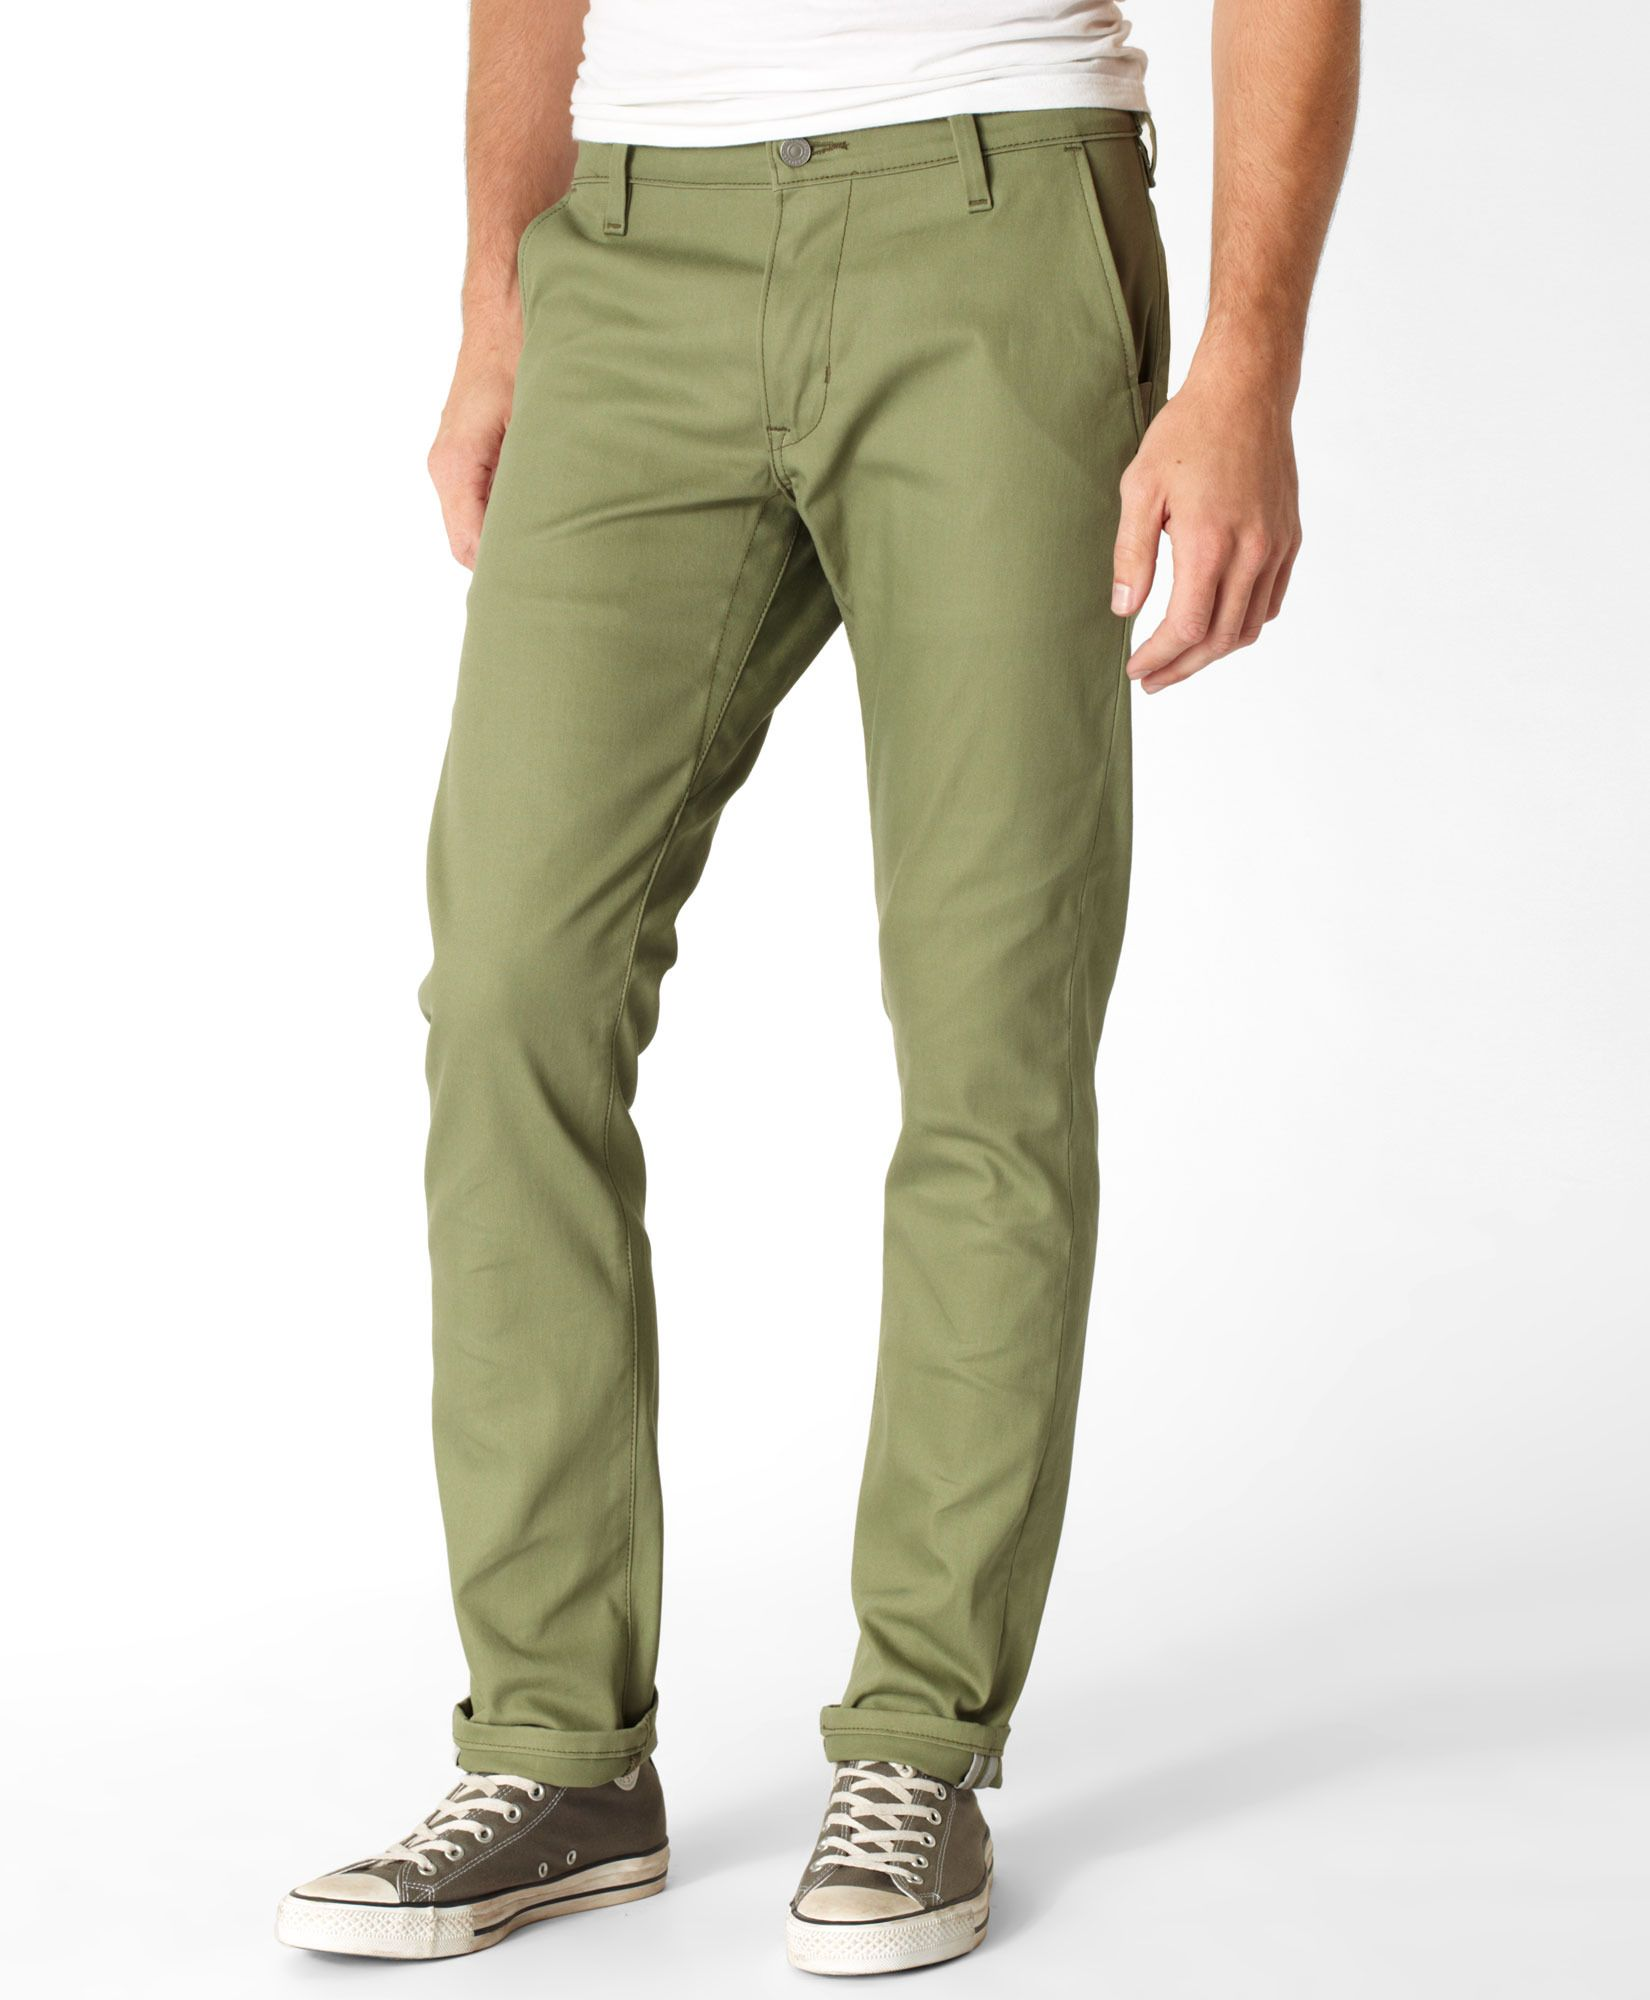 59b9963af92 Levi s 511™ Commuter Trousers - Lichen Green - Trousers